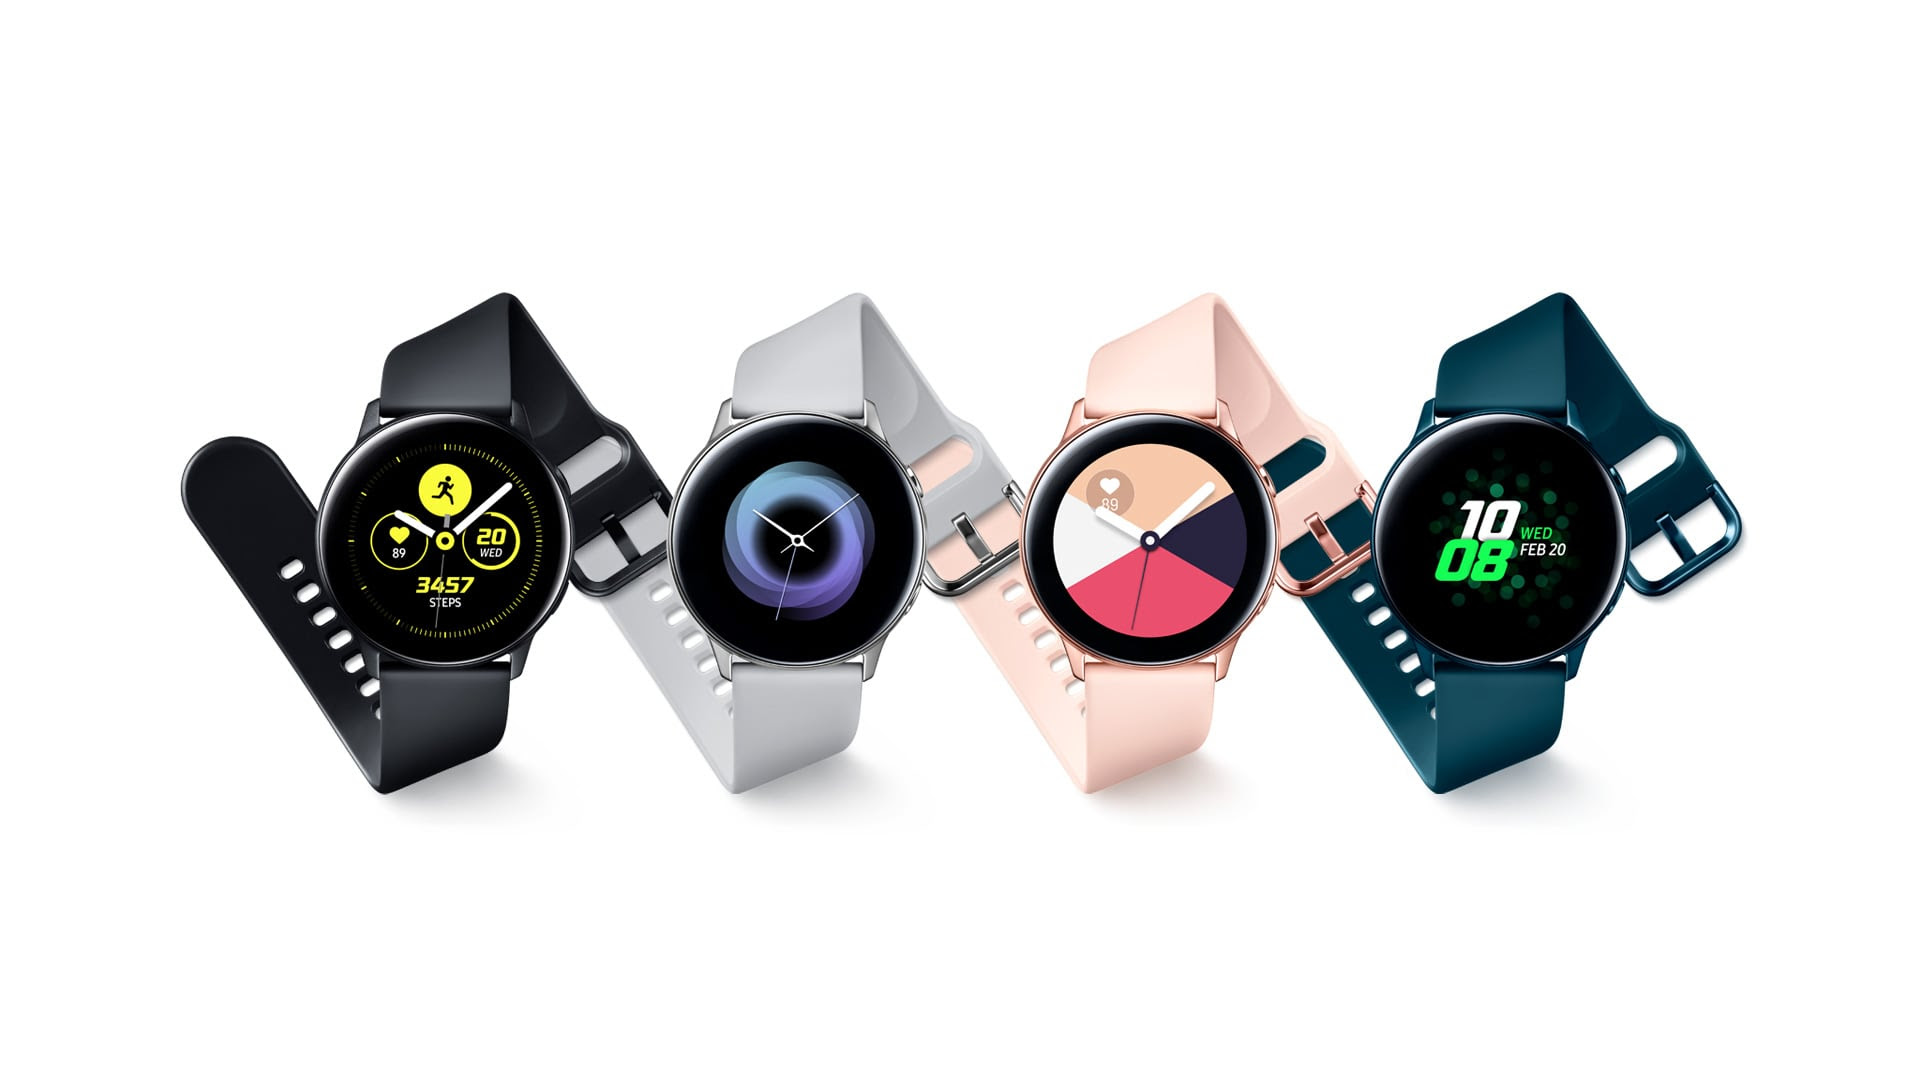 The best Samsung Galaxy Watch Active prices and deals in March 2019